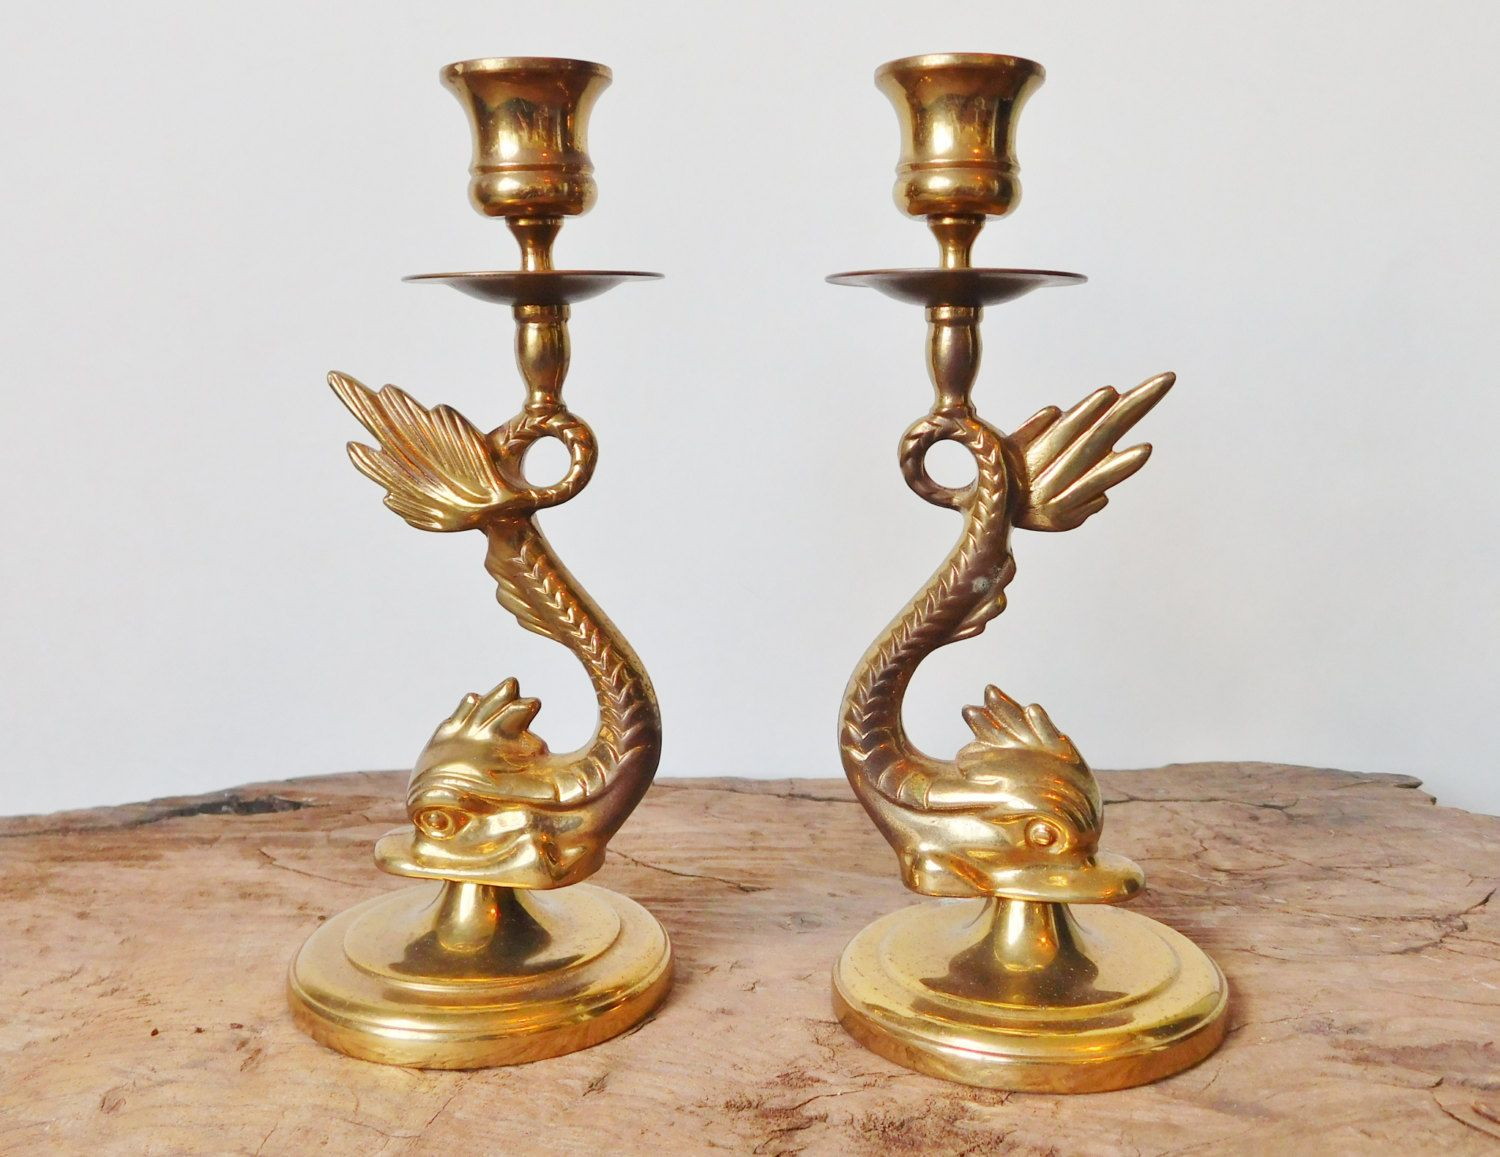 brass sea serpent candlestick holders matching pair brass sea brass sea serpent candlestick holders matching pair brass sea dragons sea creature mythical dragon mid century asian vintage